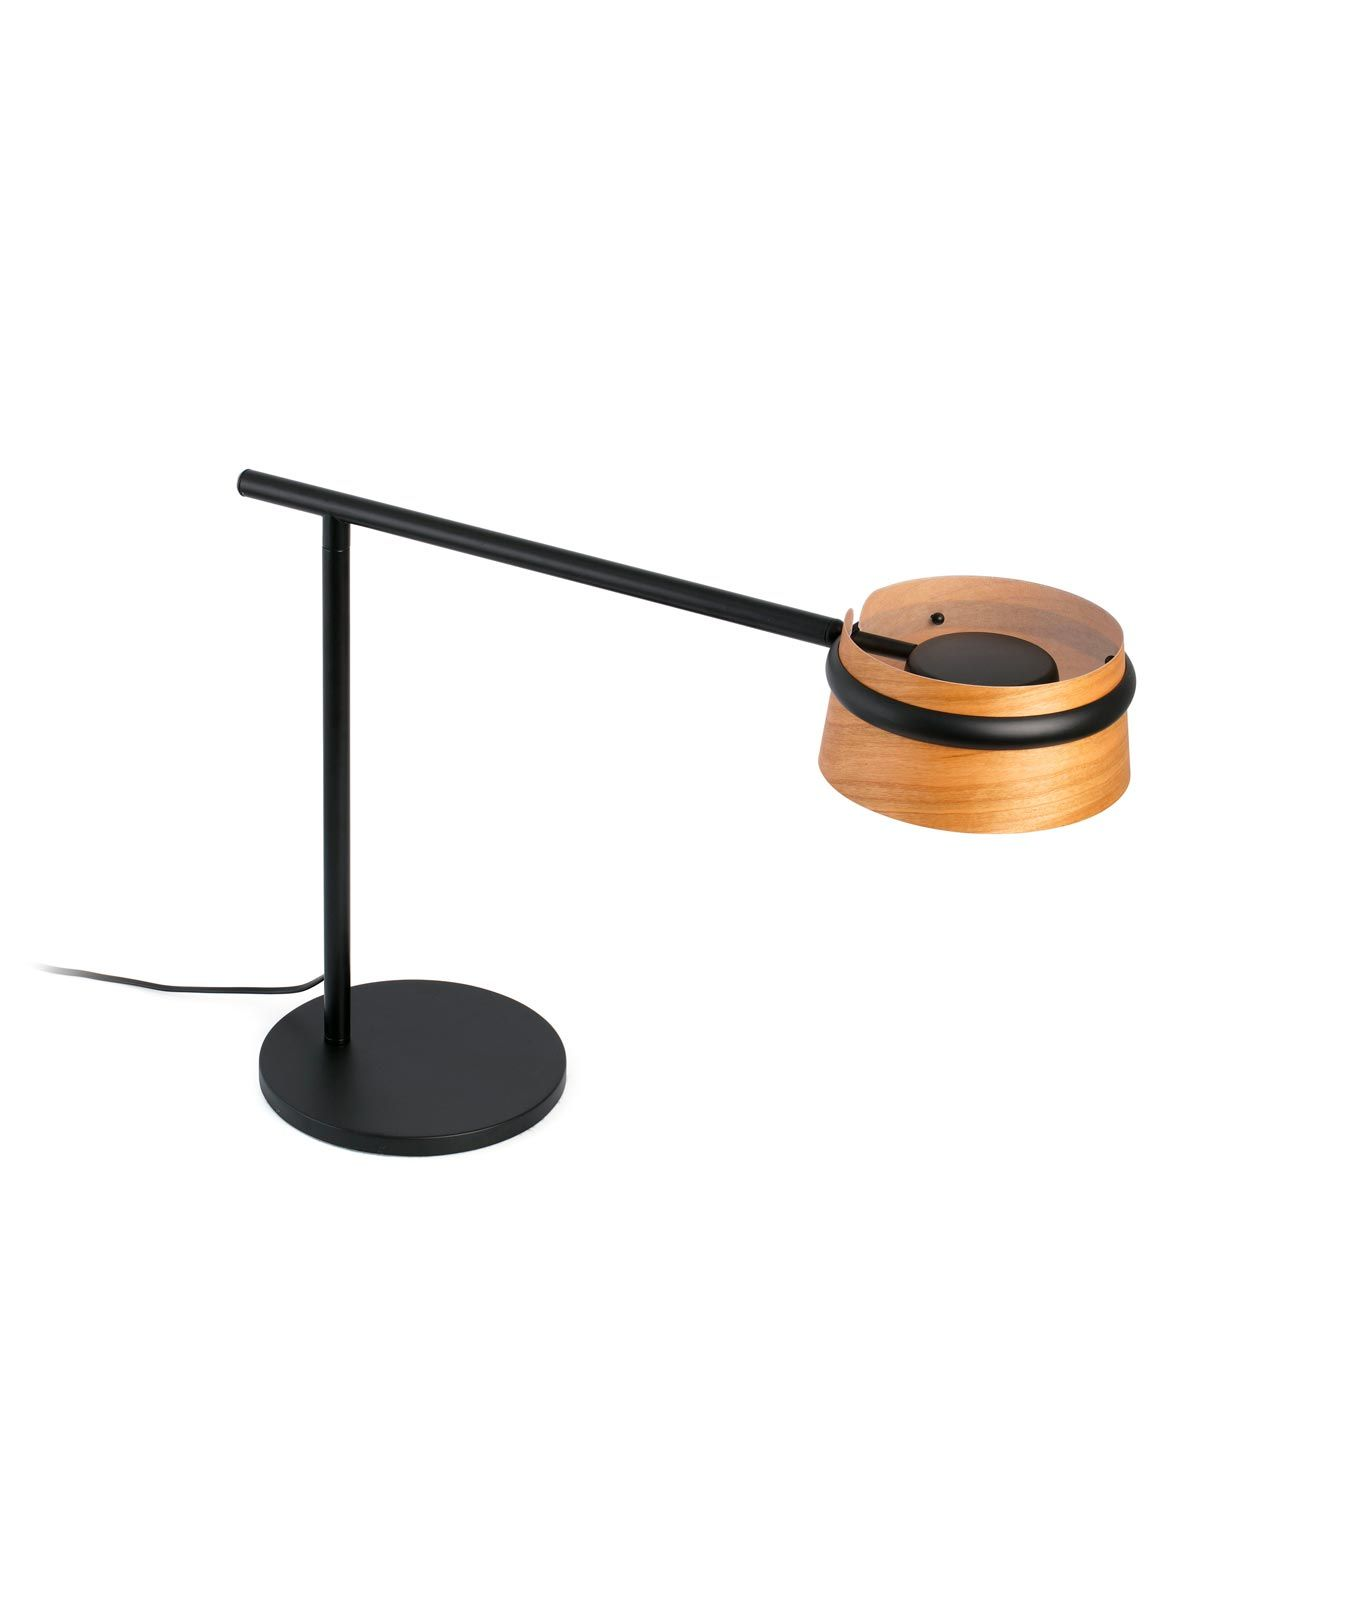 Lampara Mesa Led Lámpara Mesa Negra Y Madera Loop Led La Casa De La Lámpara